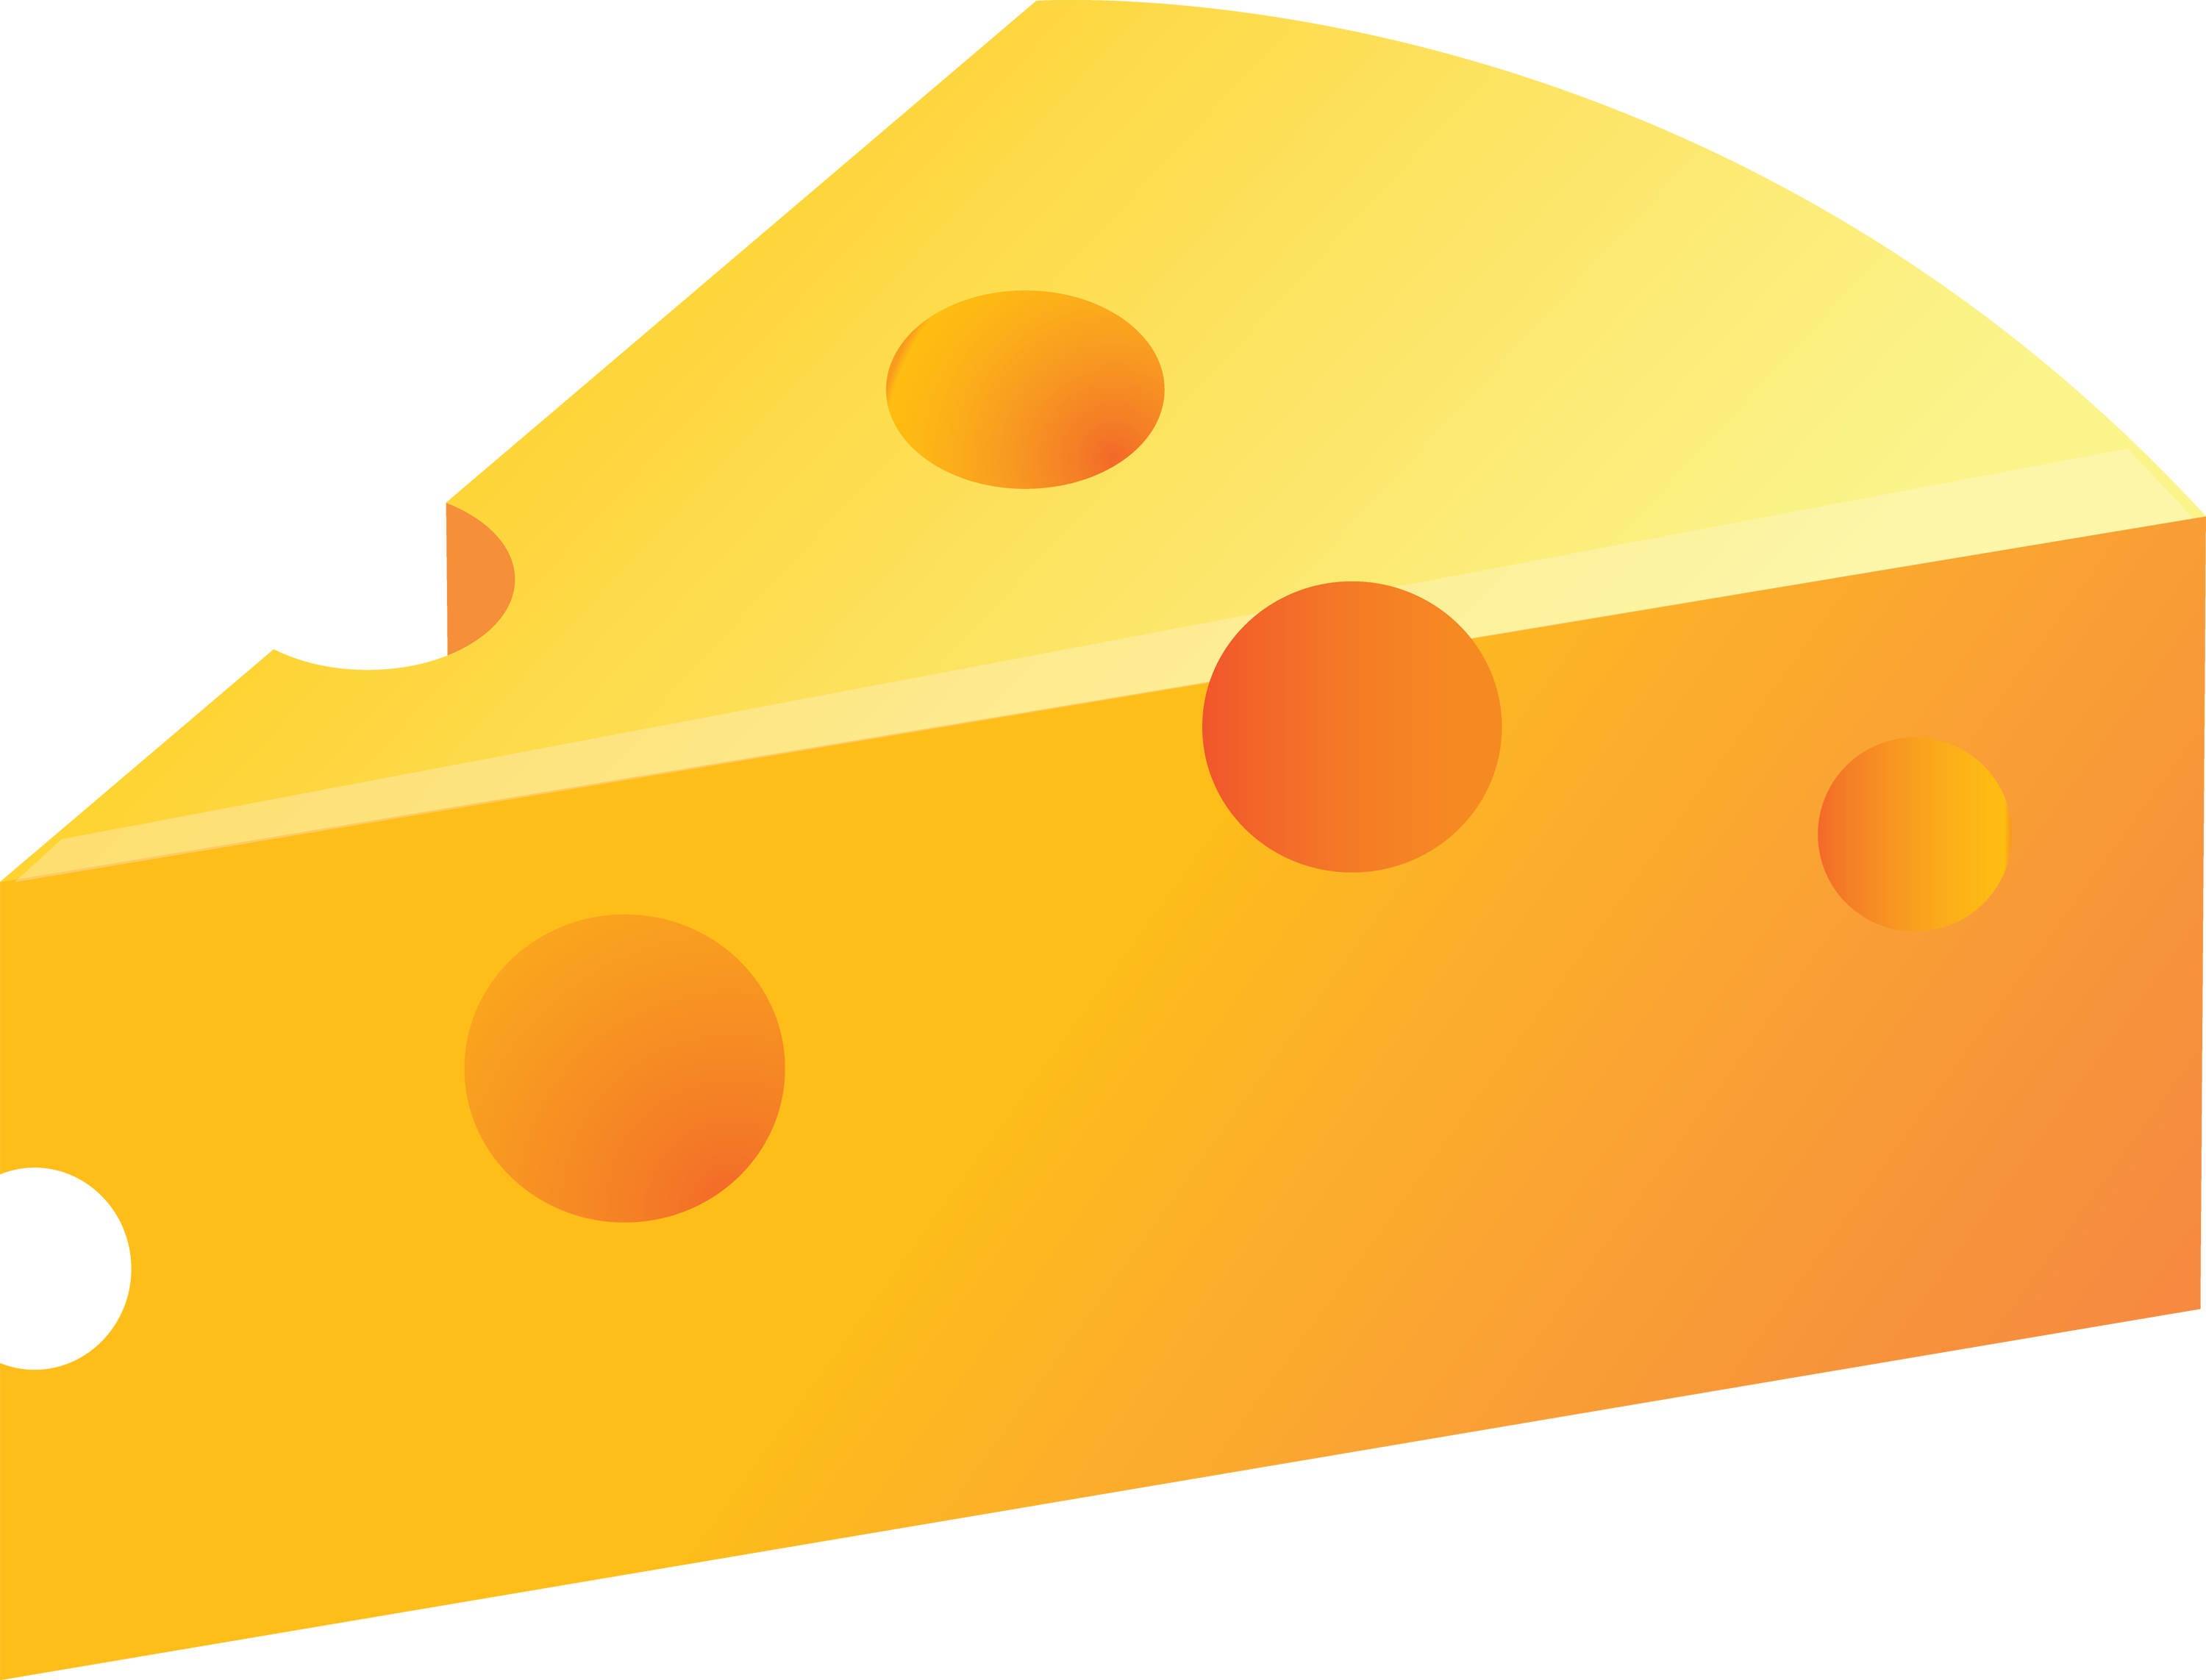 Cheese clipart transparent background. Png file web icons